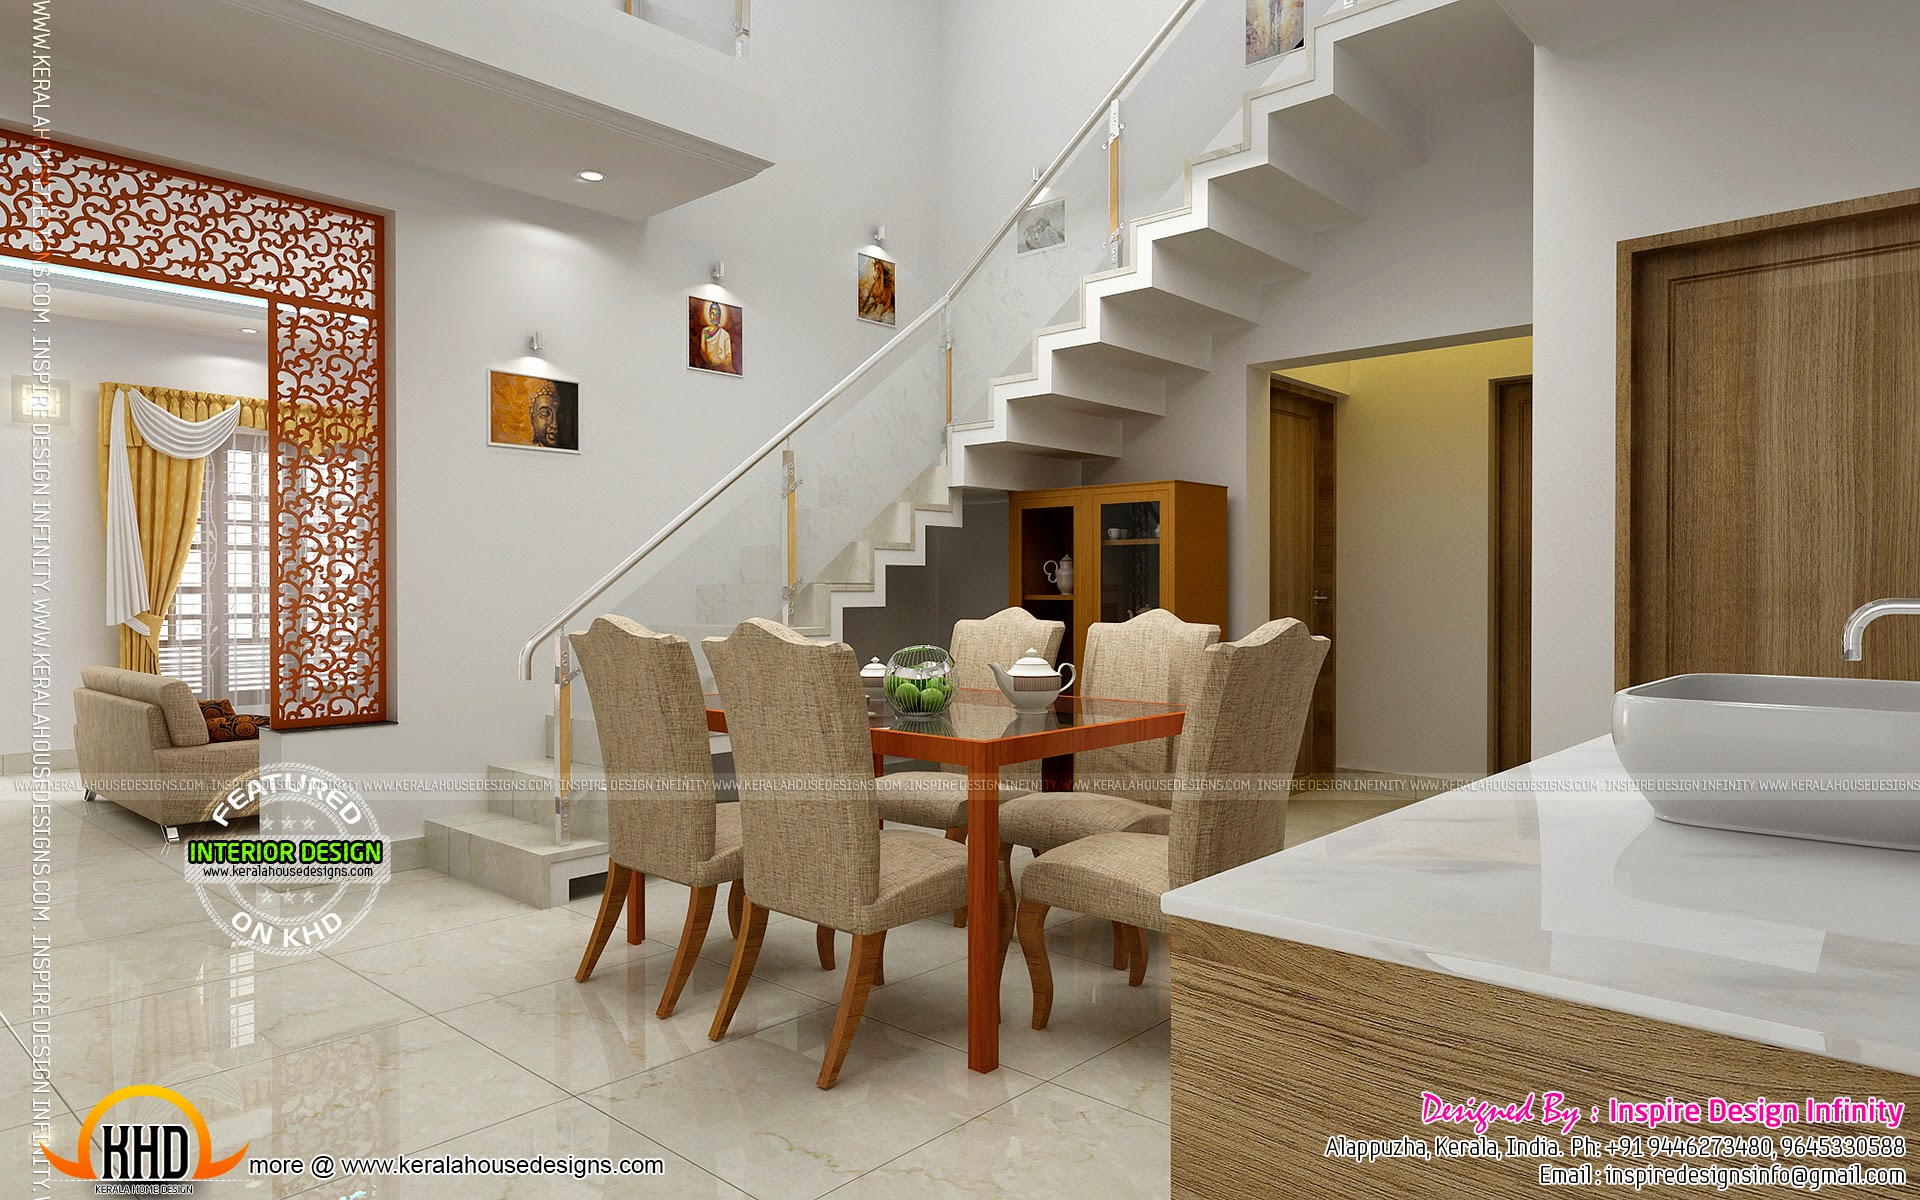 Dining room designs kerala home design and floor plans for Dining room ideas kerala